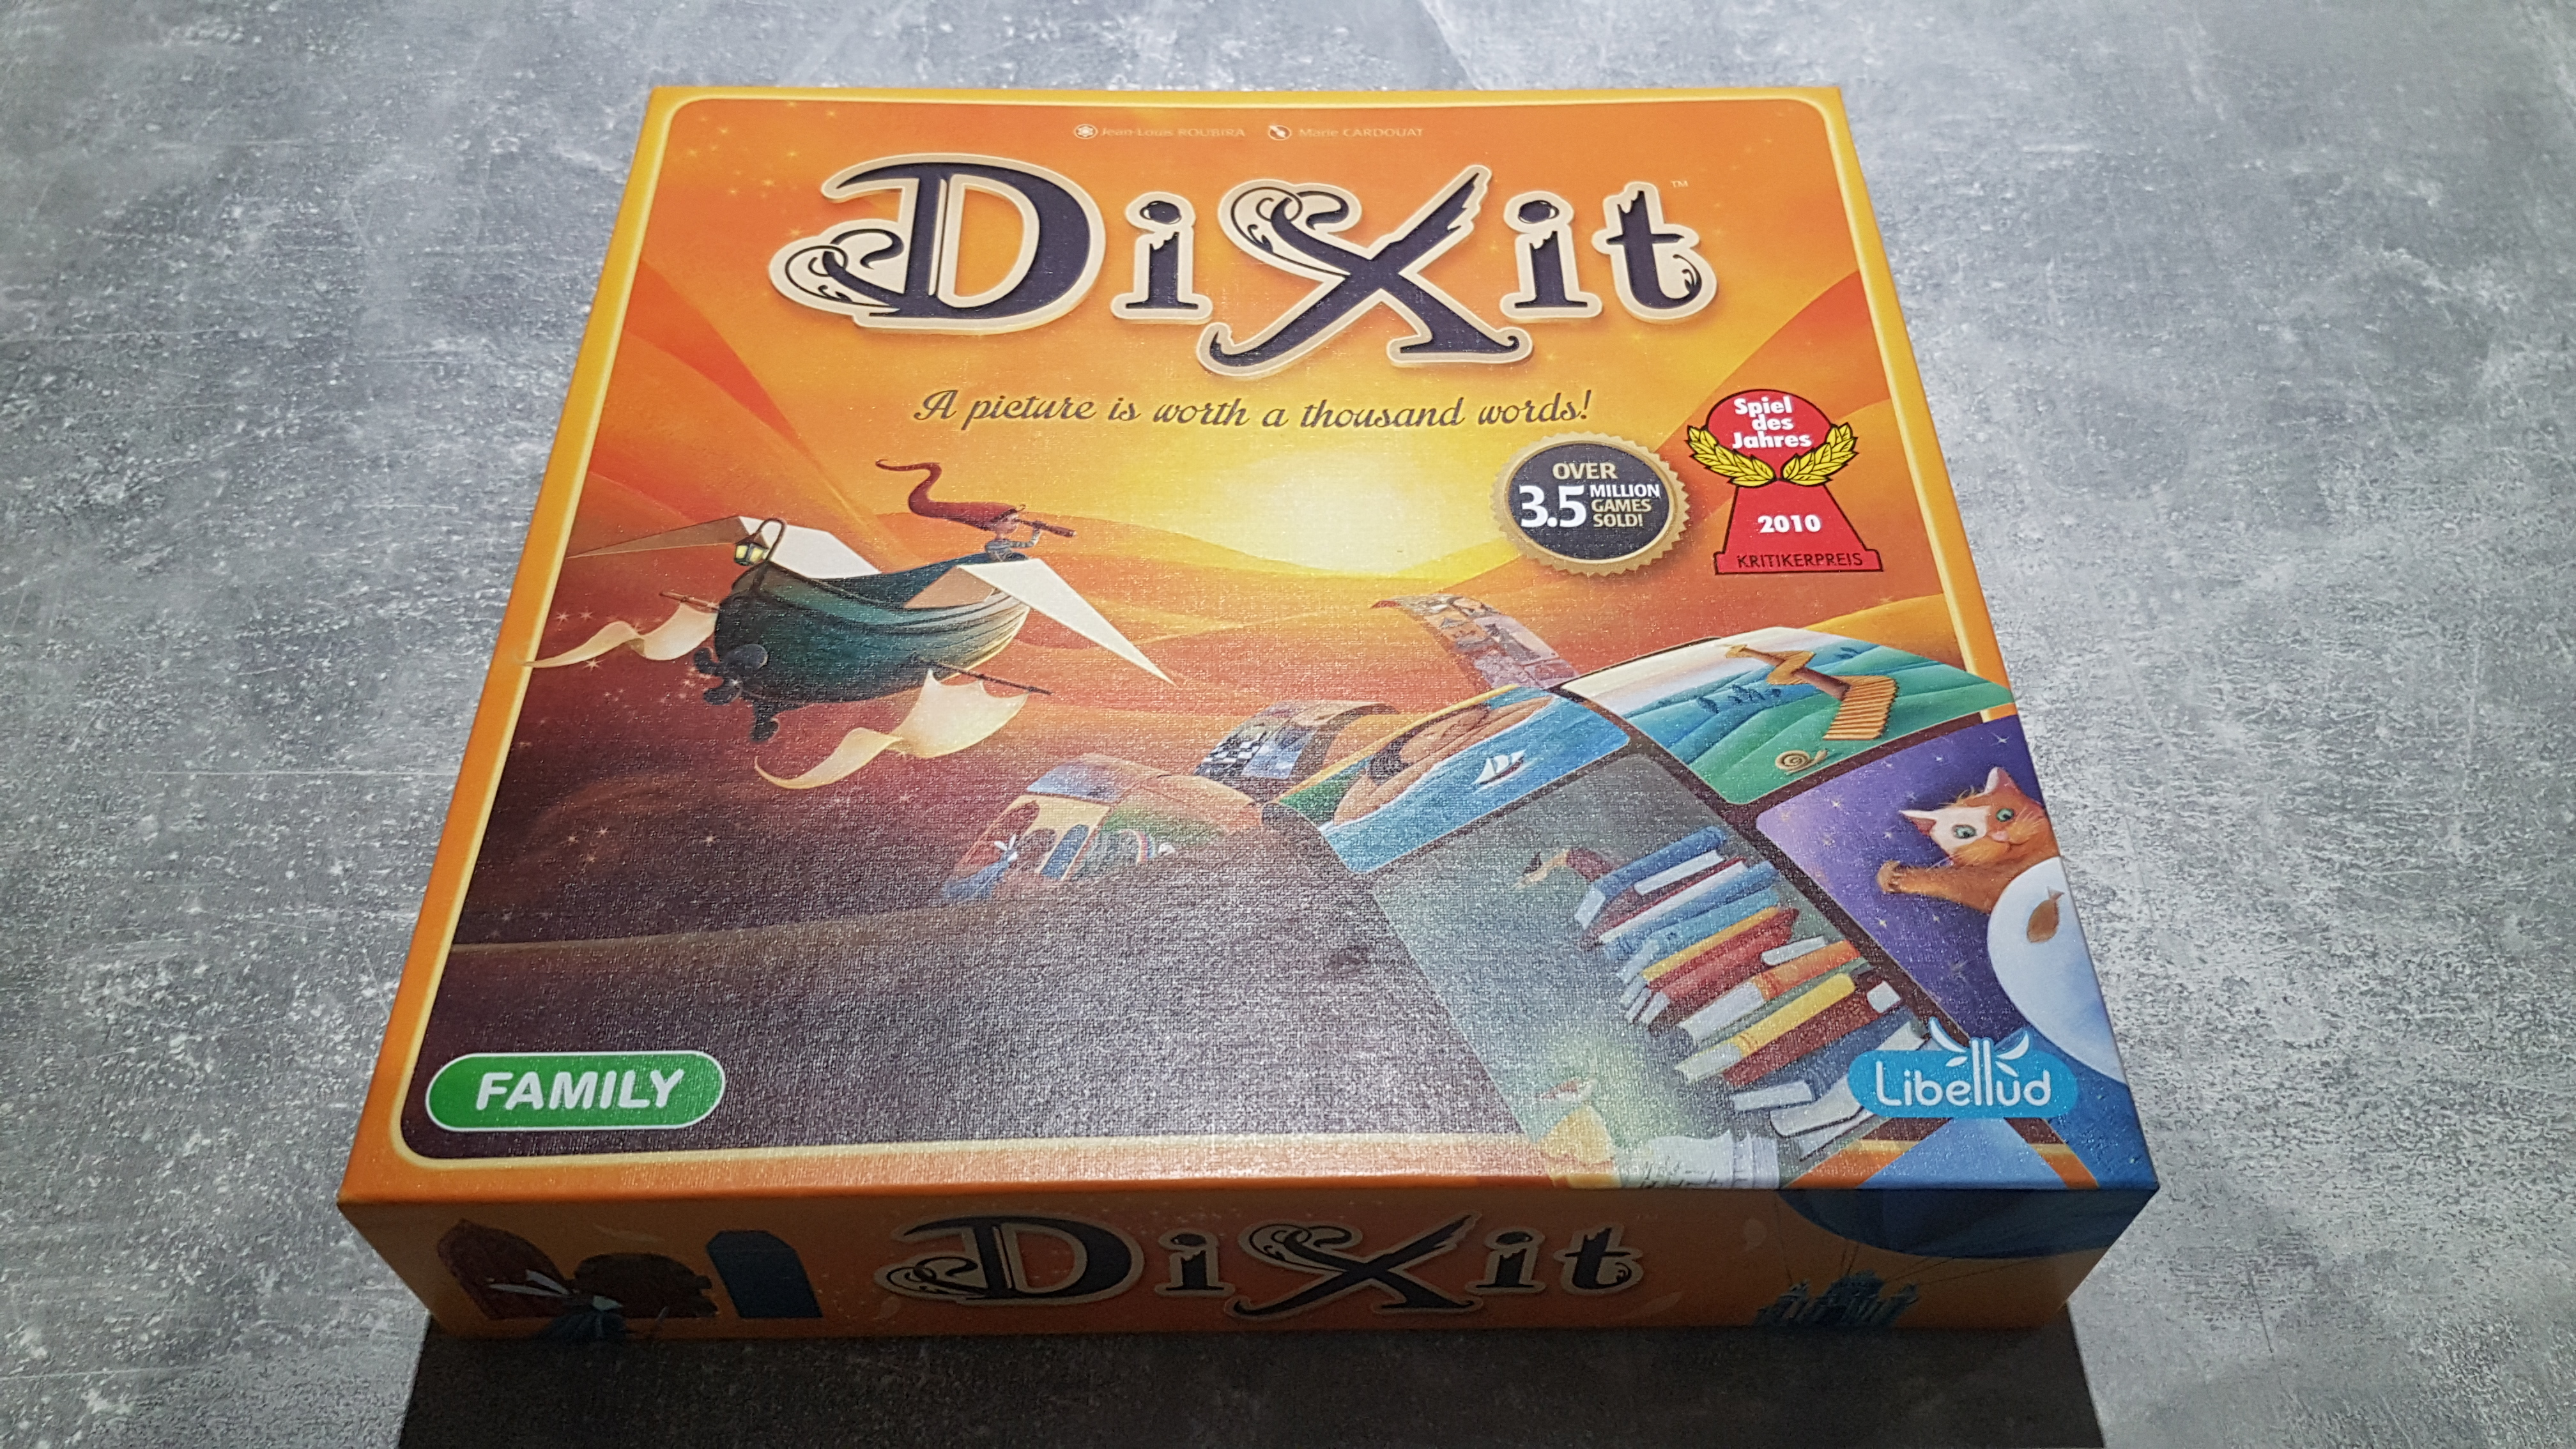 Dixit Review - Simple Fun With Incredible Art - Just Push Start image